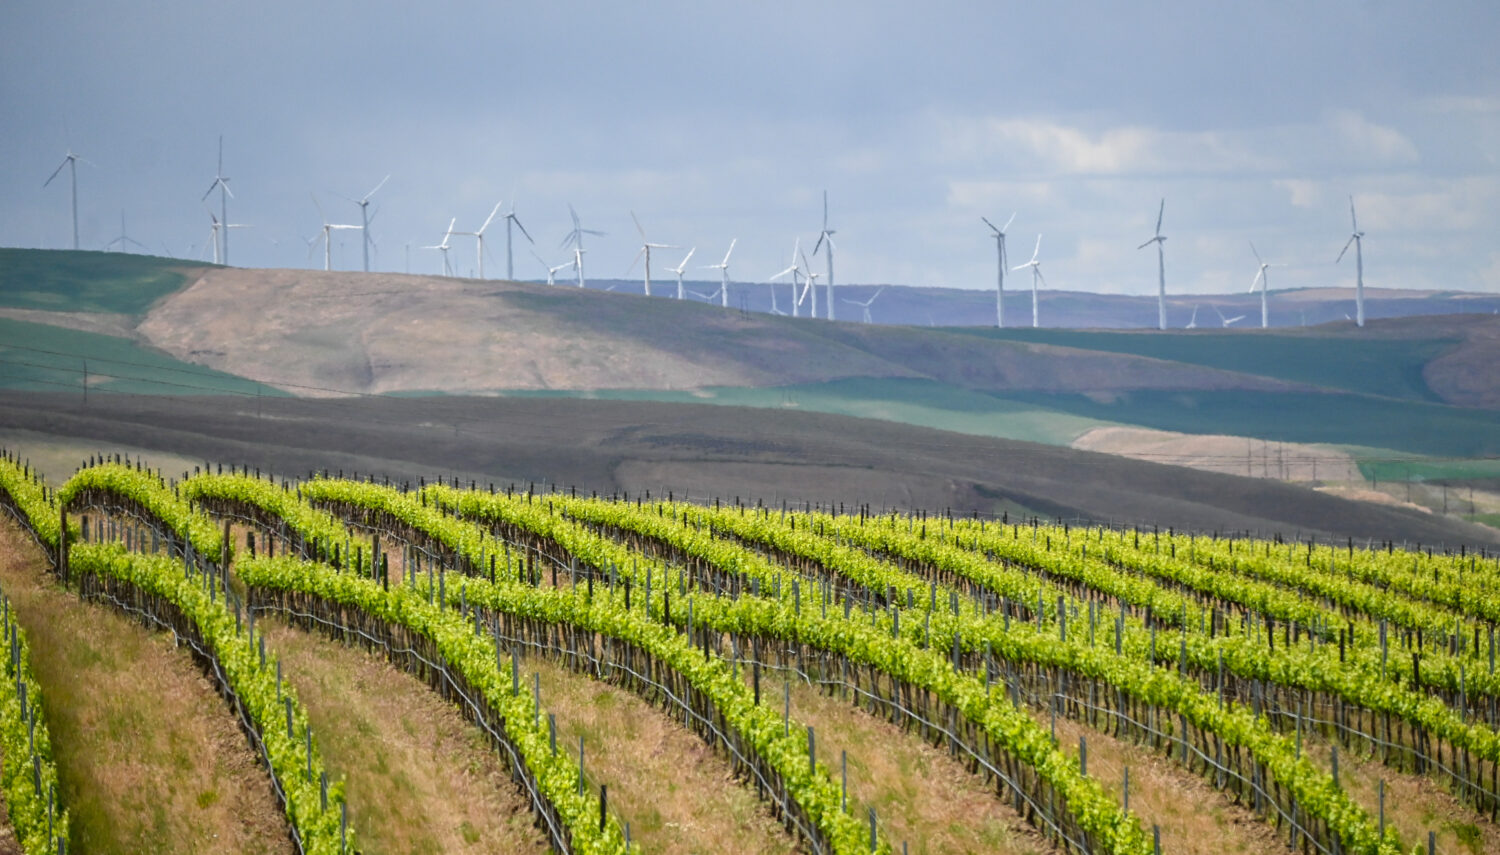 Bright green rows of grape vines spaced far apart rise and fall with the rolling hills. Green and tan hills are behind the vines, and wind turbines in the distance.